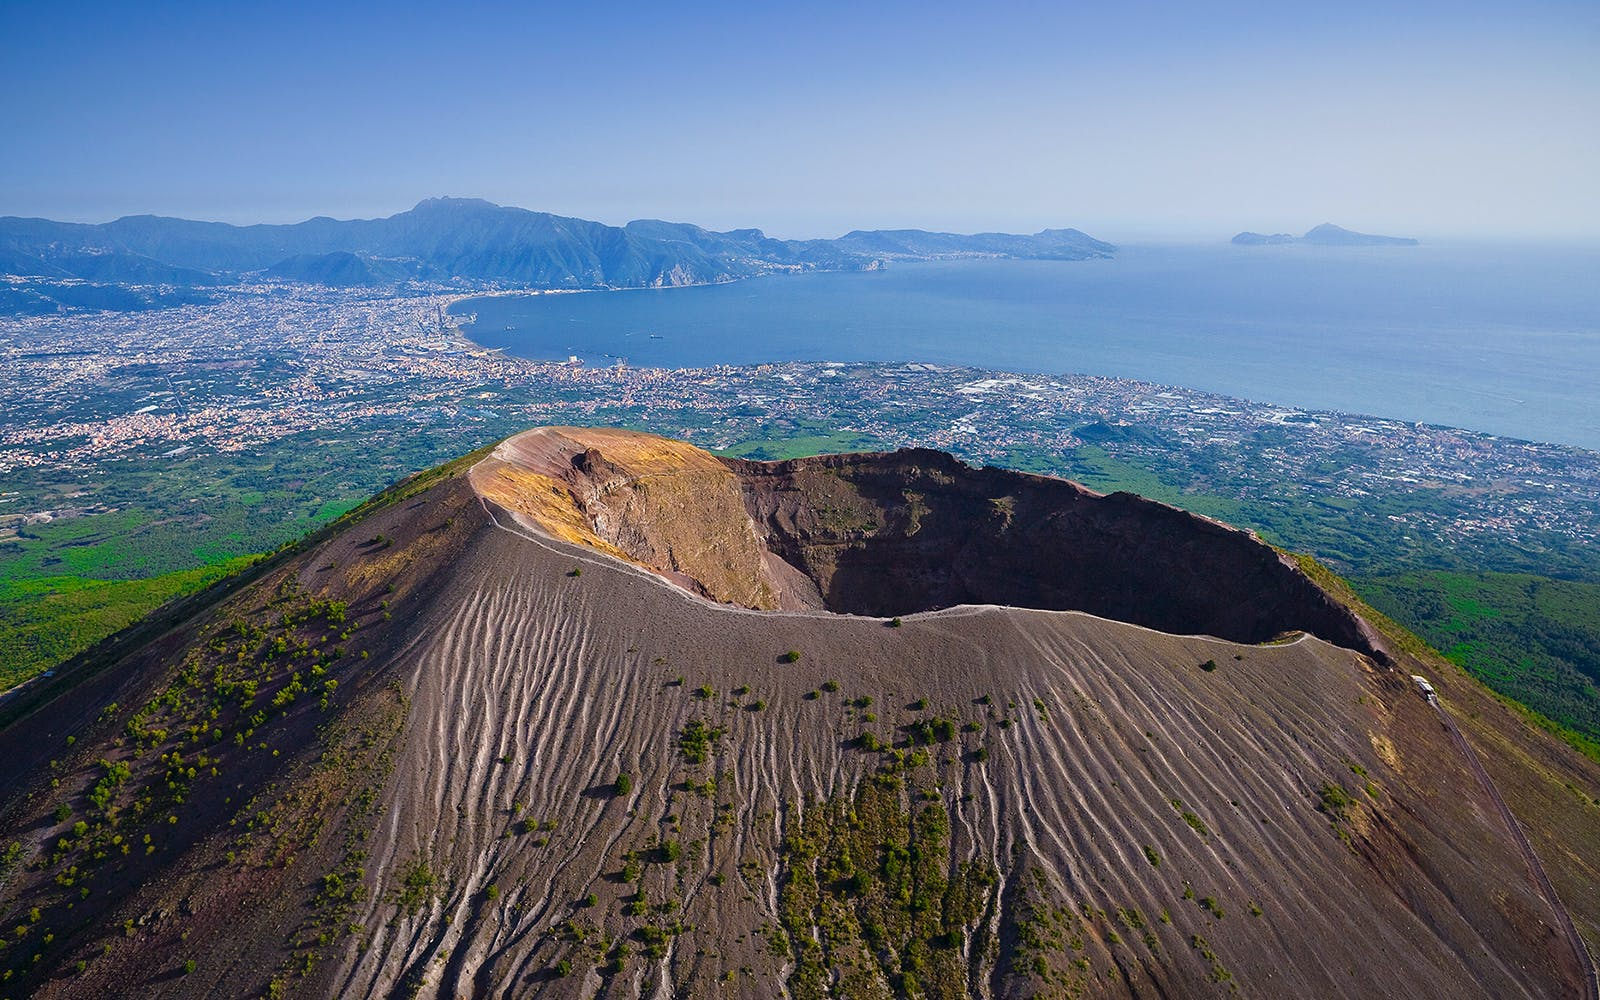 Pompeii and Mount Vesuvius Full Day Tour from Naples